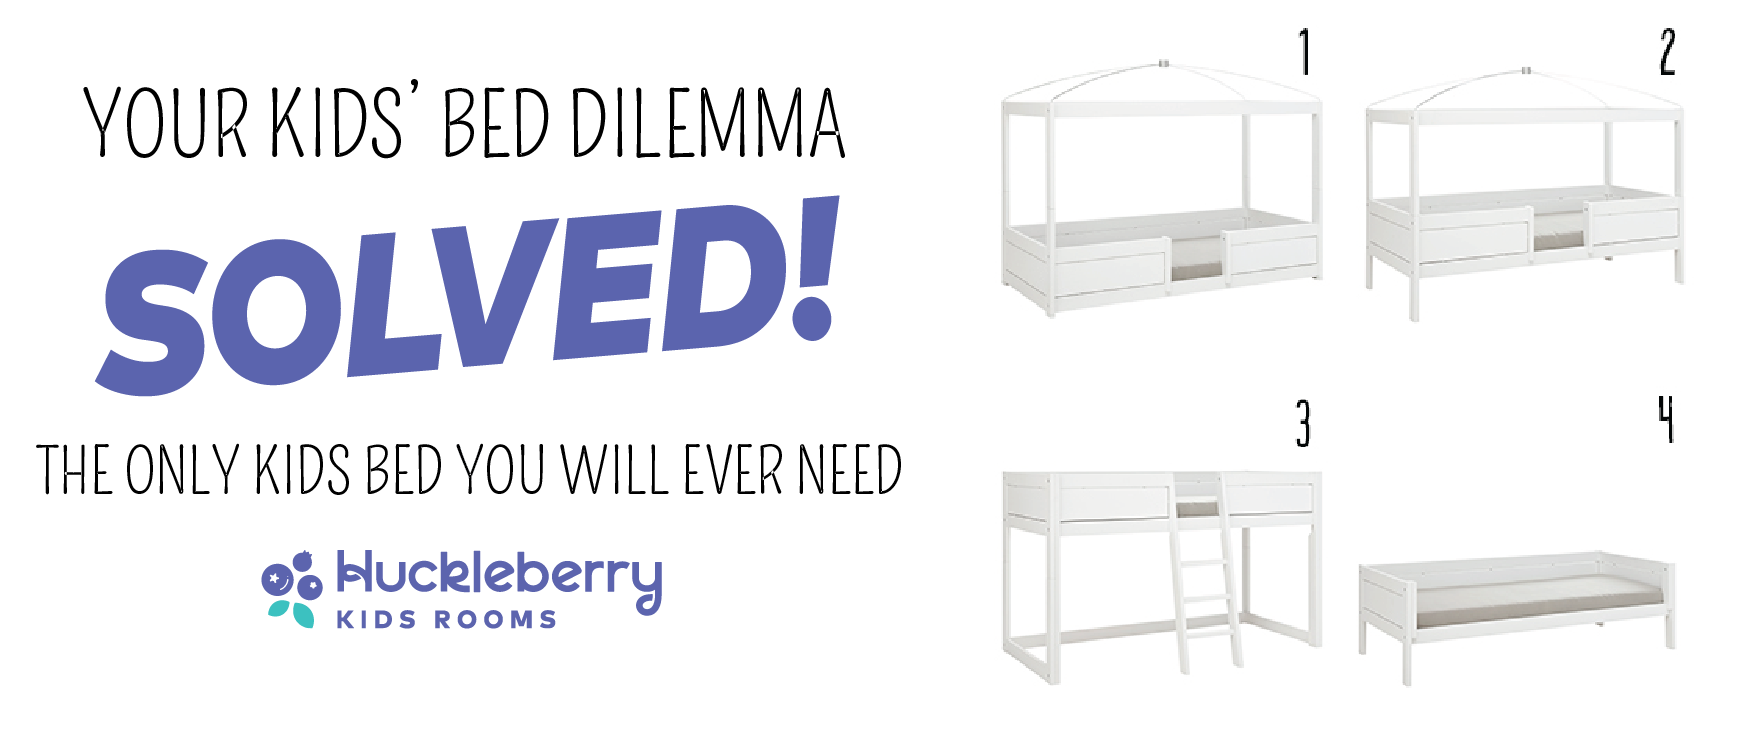 Huckleberry Kids Rooms - 4-IN-1 Bed, A kids bed that grows with your child